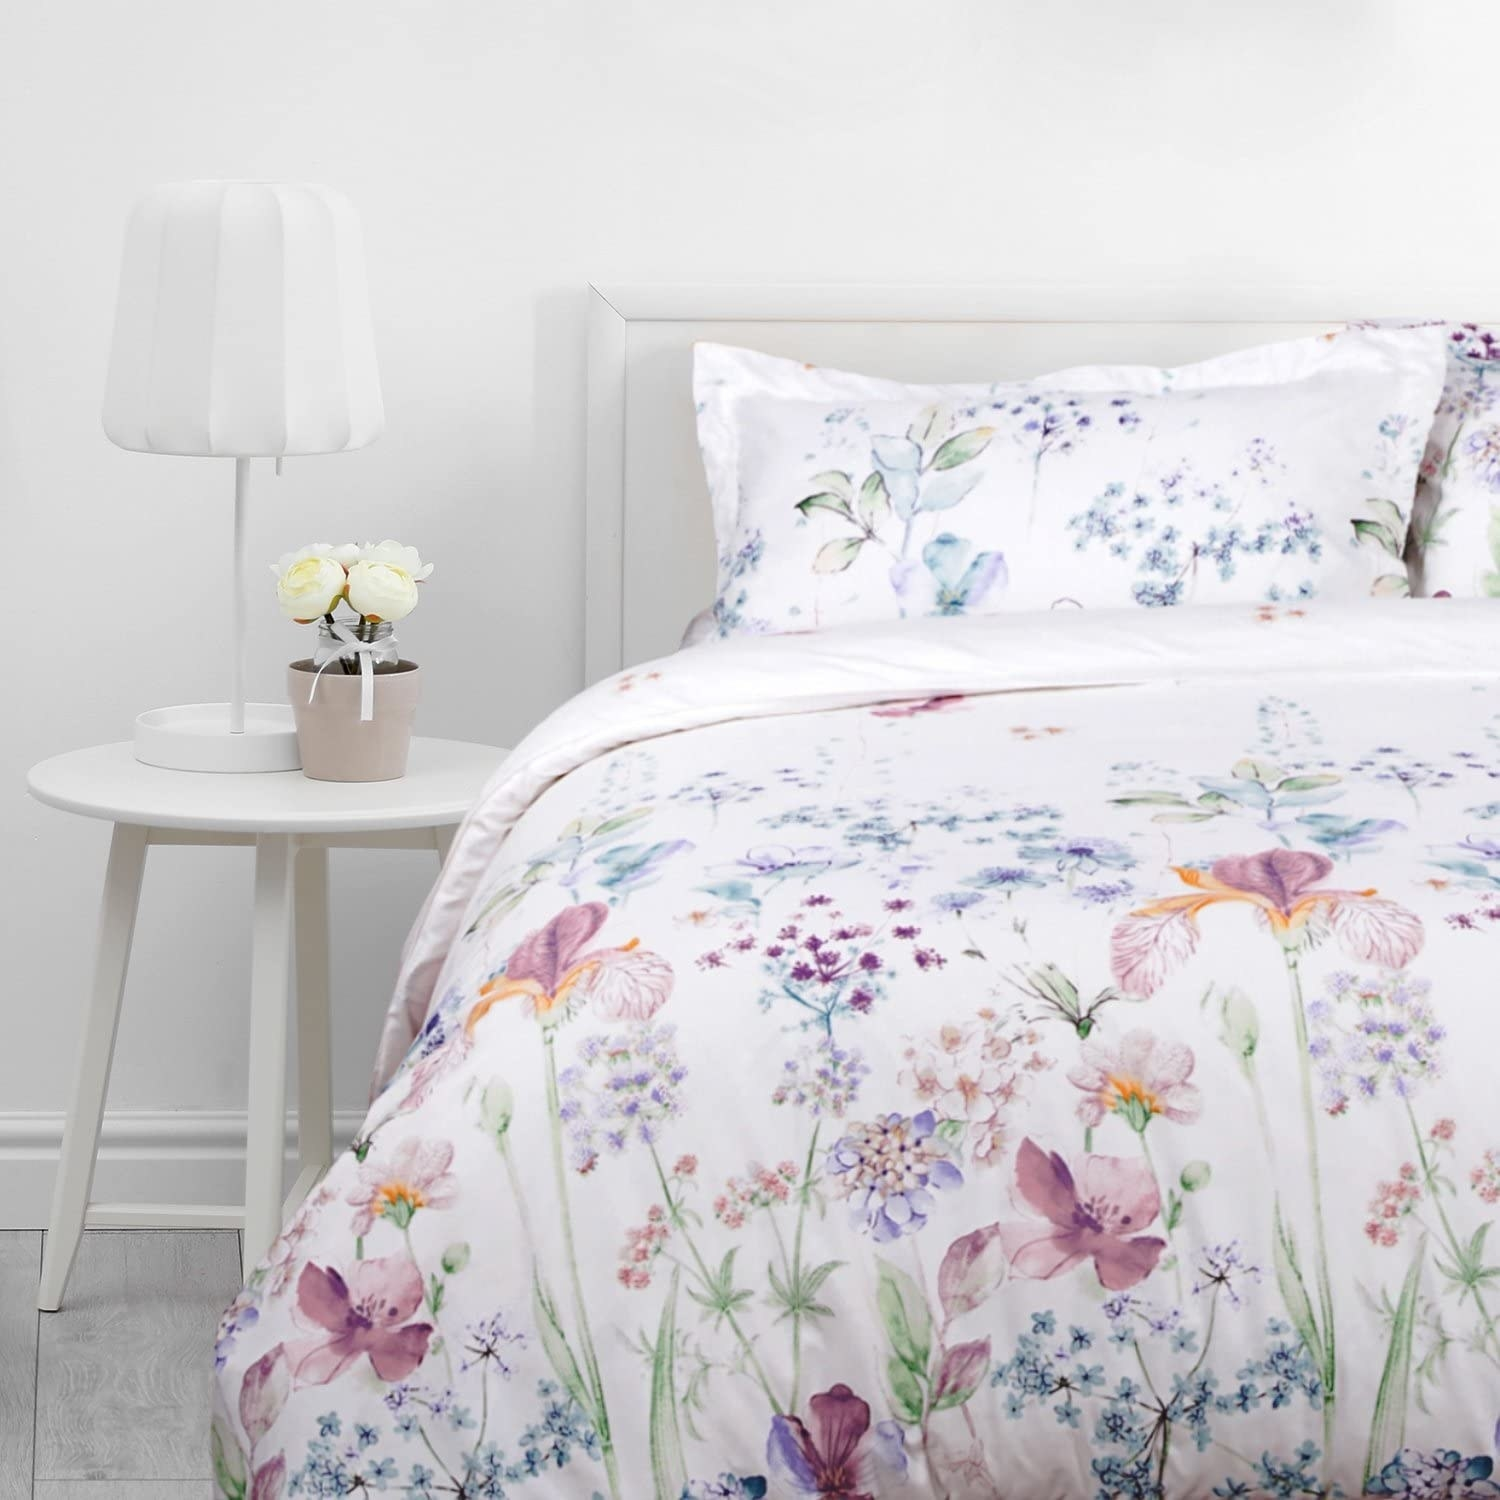 A floral duvet cover and pillowcases are on a bed